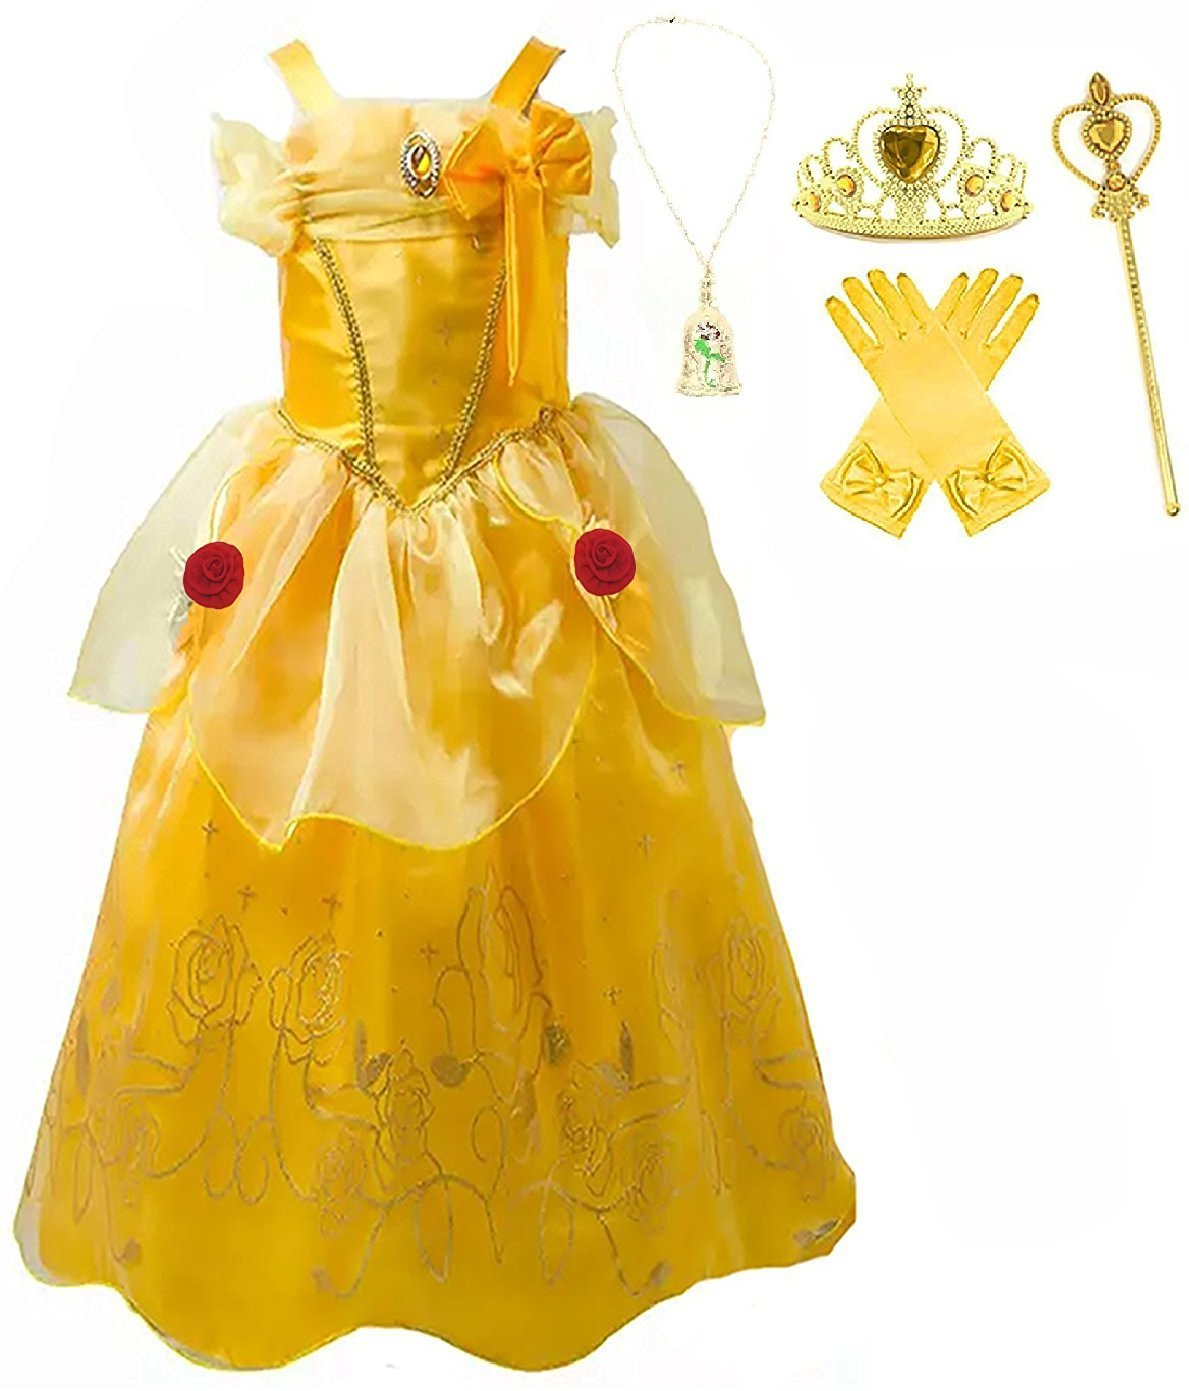 Romy's Collection Princess Belle Yellow Party Dress Costume (6-7, Yellow)